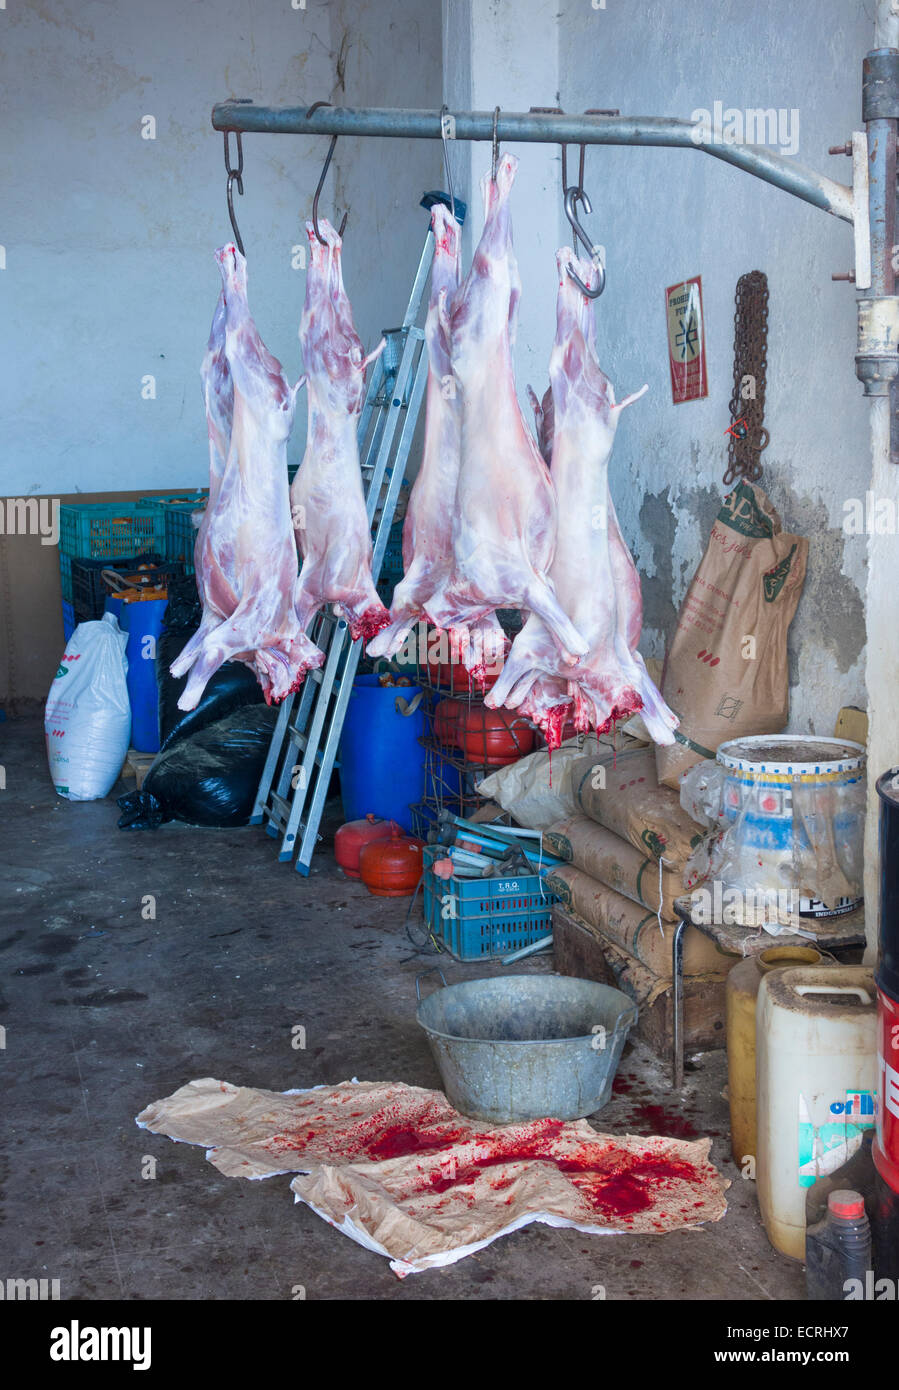 Recently slaughtered Lambs hanging in shed on small farm in mountains of Gran Canaria - Stock Image